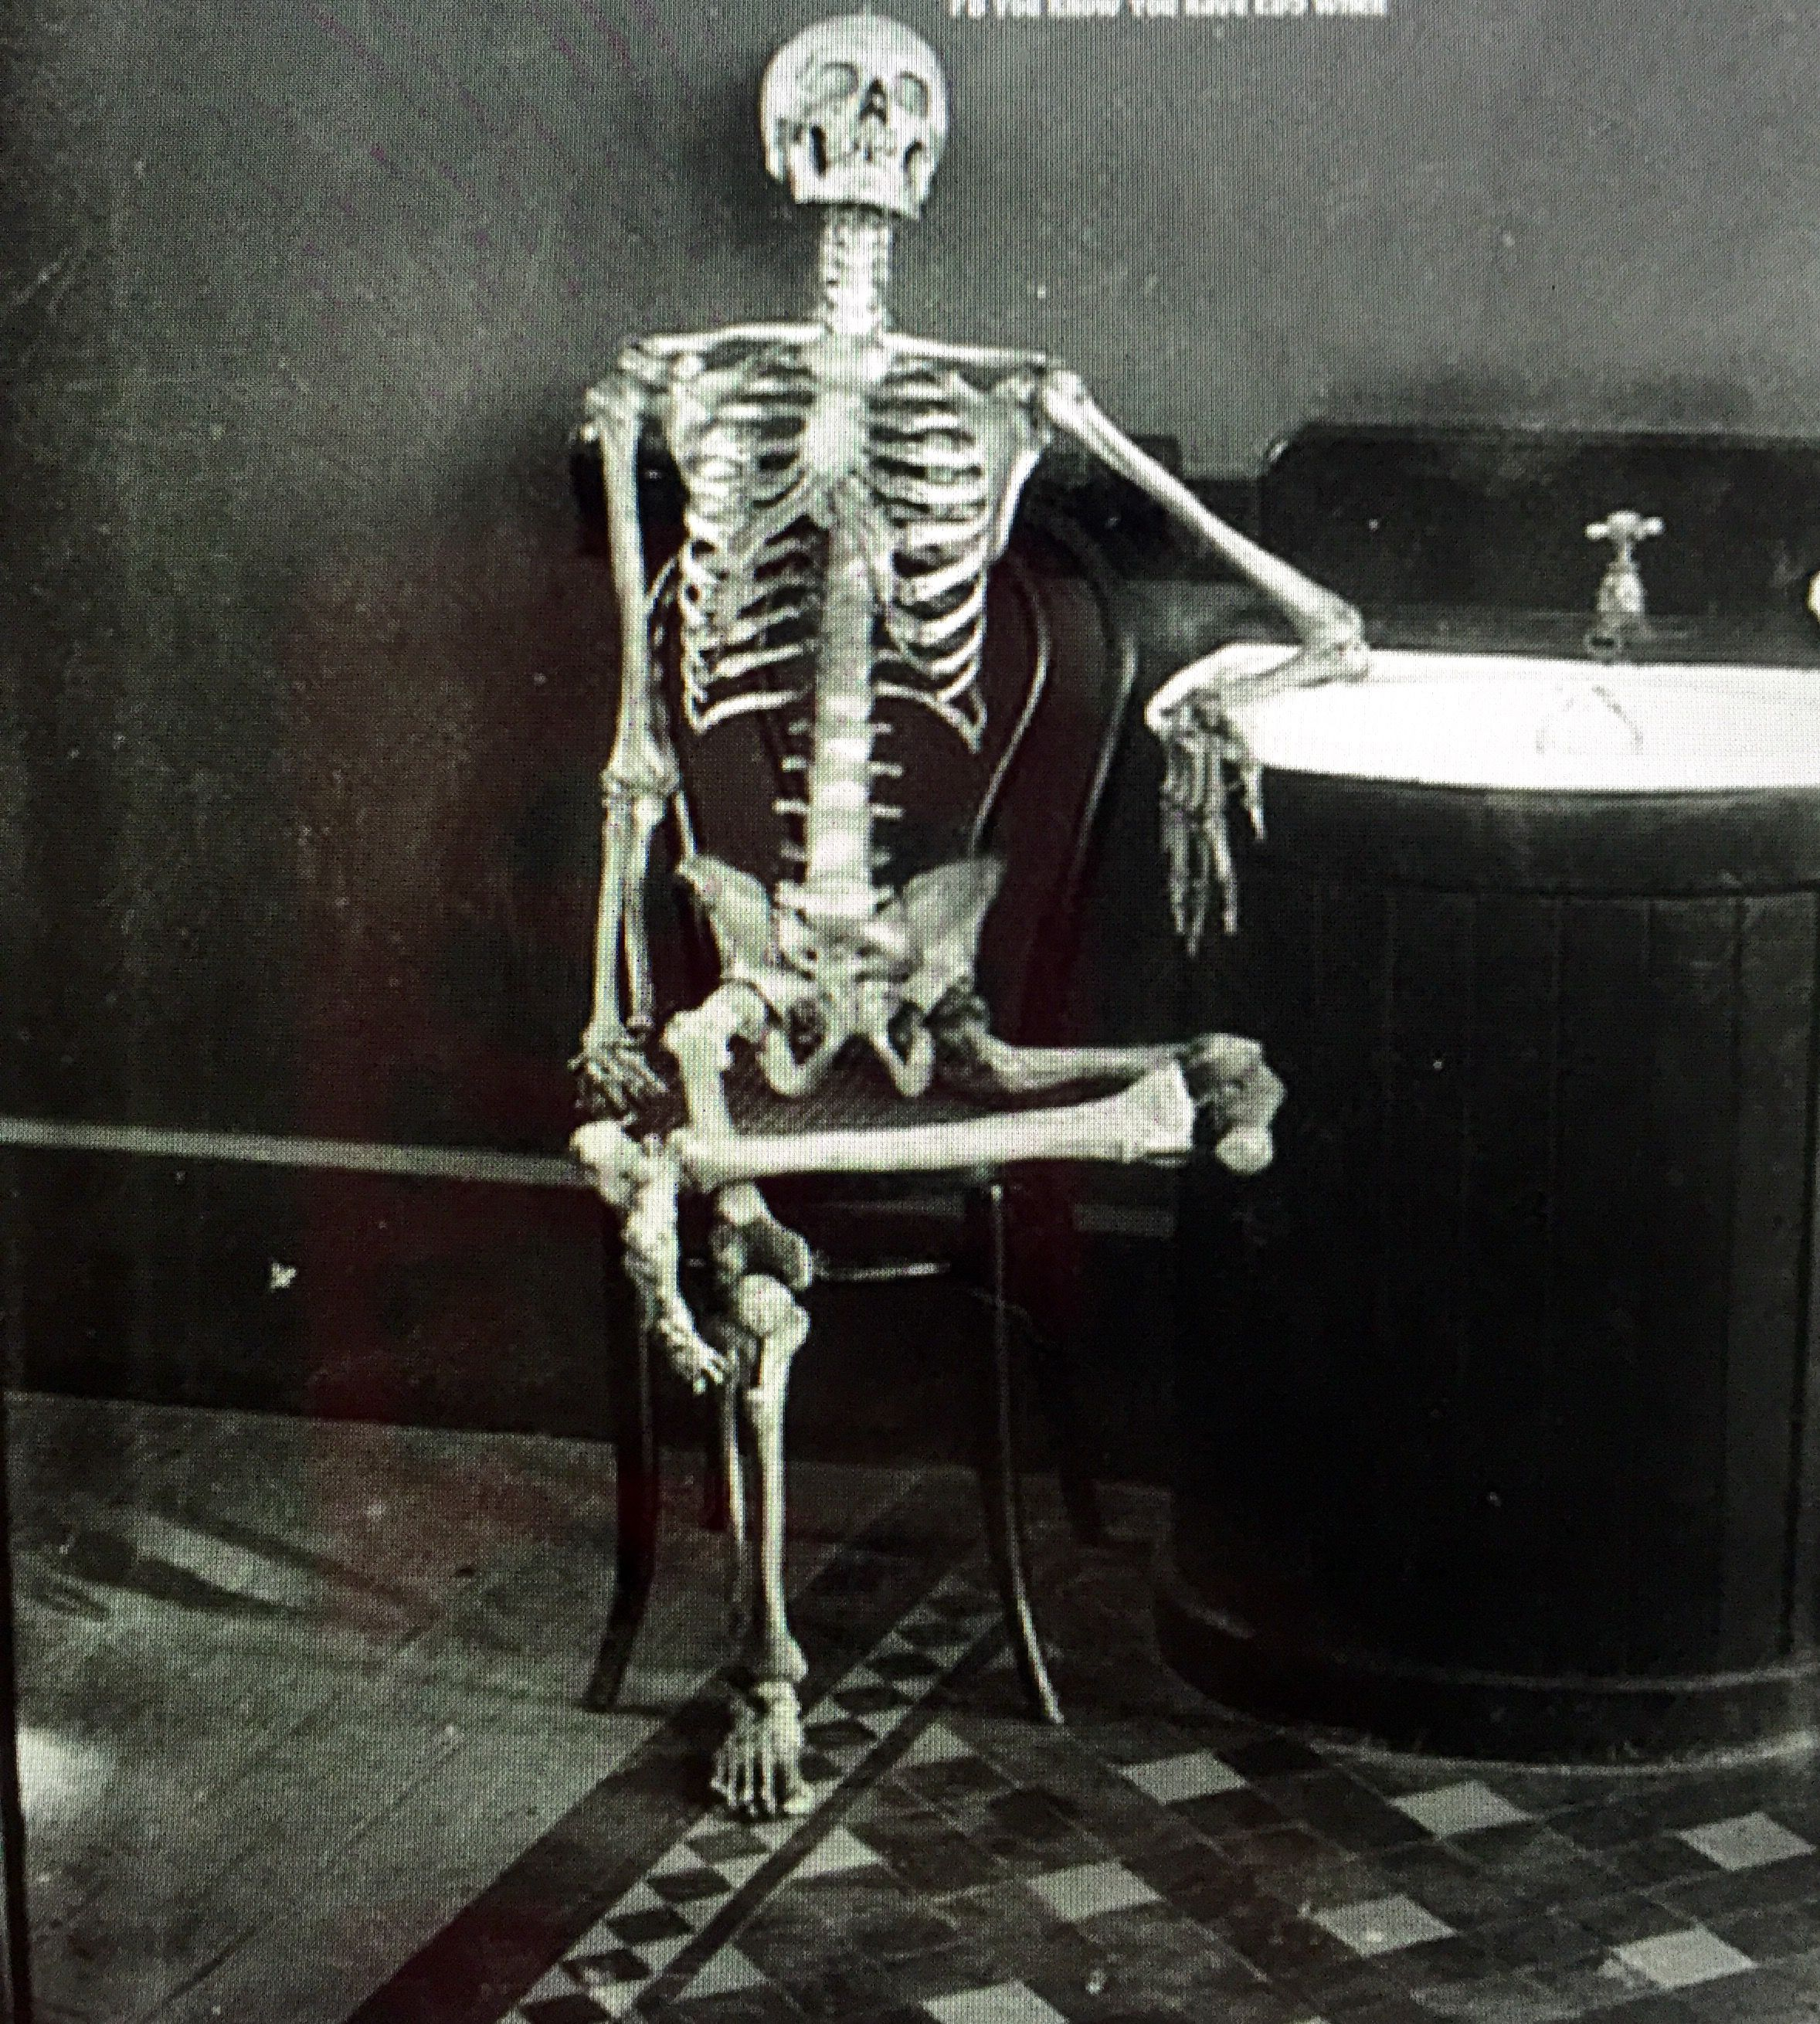 Waiting on a cure..........